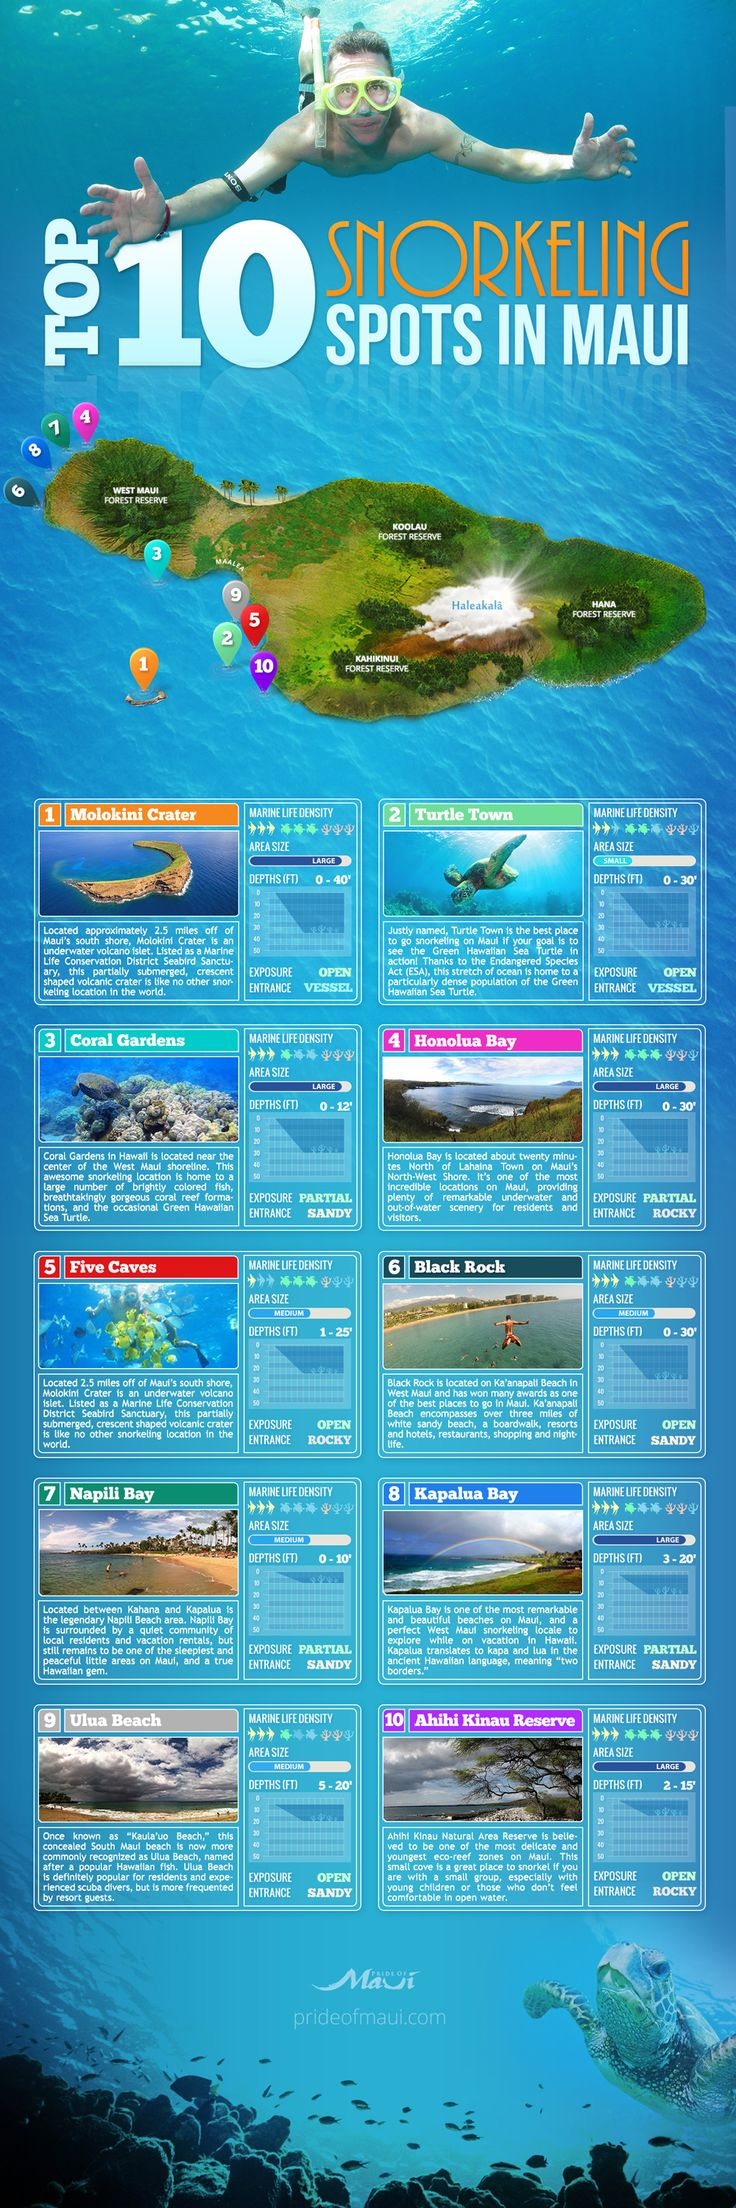 here Maui and   balenciagas snorkeling   spots we Hawaii Maui   come  Snorkeling